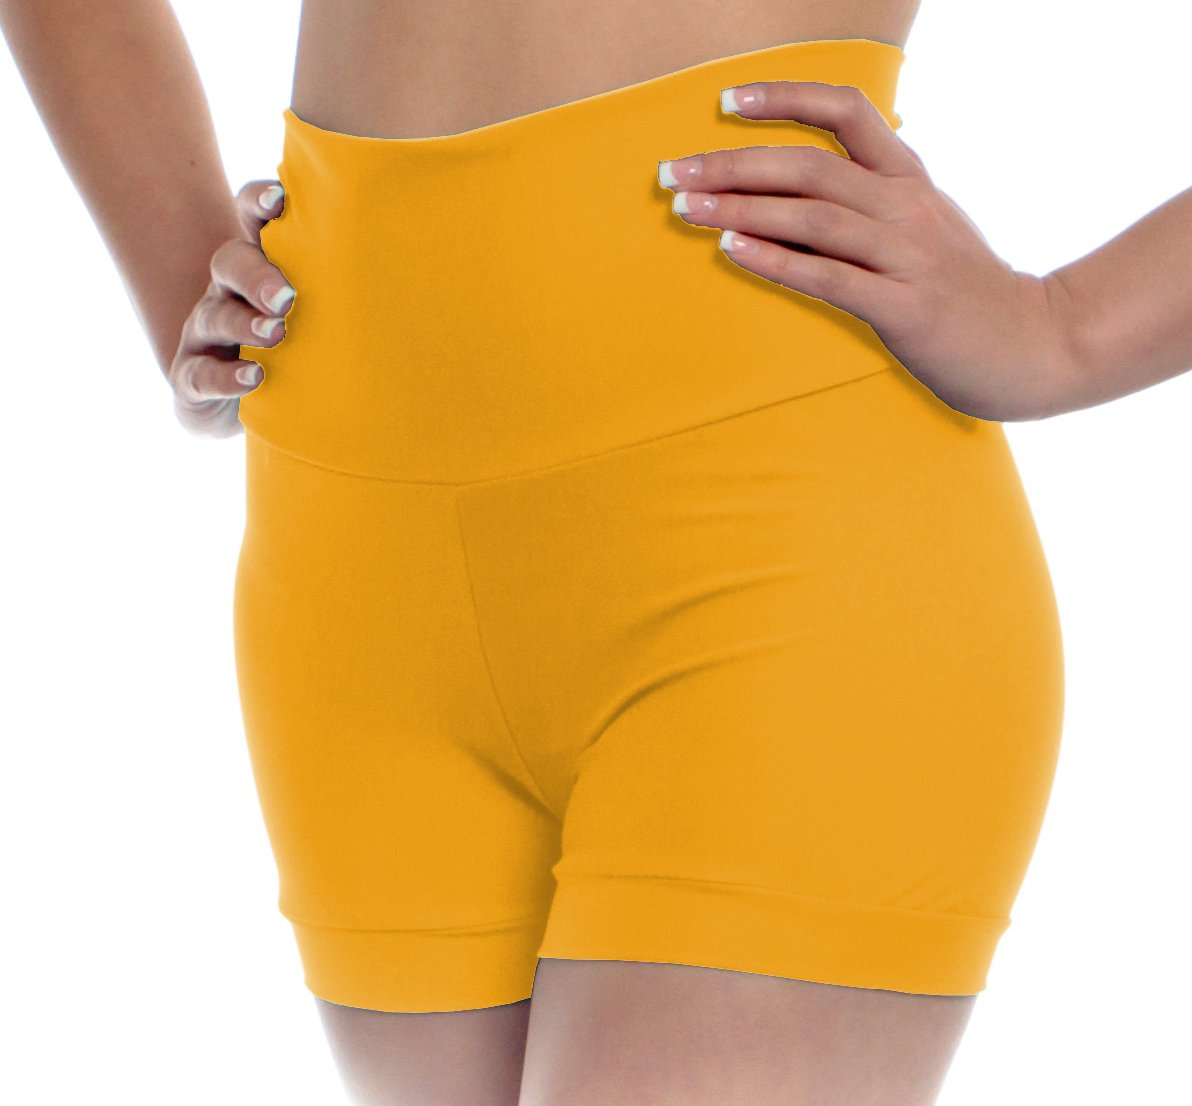 B Dancewear Girls High Waisted Dance Shorts Extra Small Yellow Child and Kid Sizes with Fold Over Band and Stretch by B Dancewear